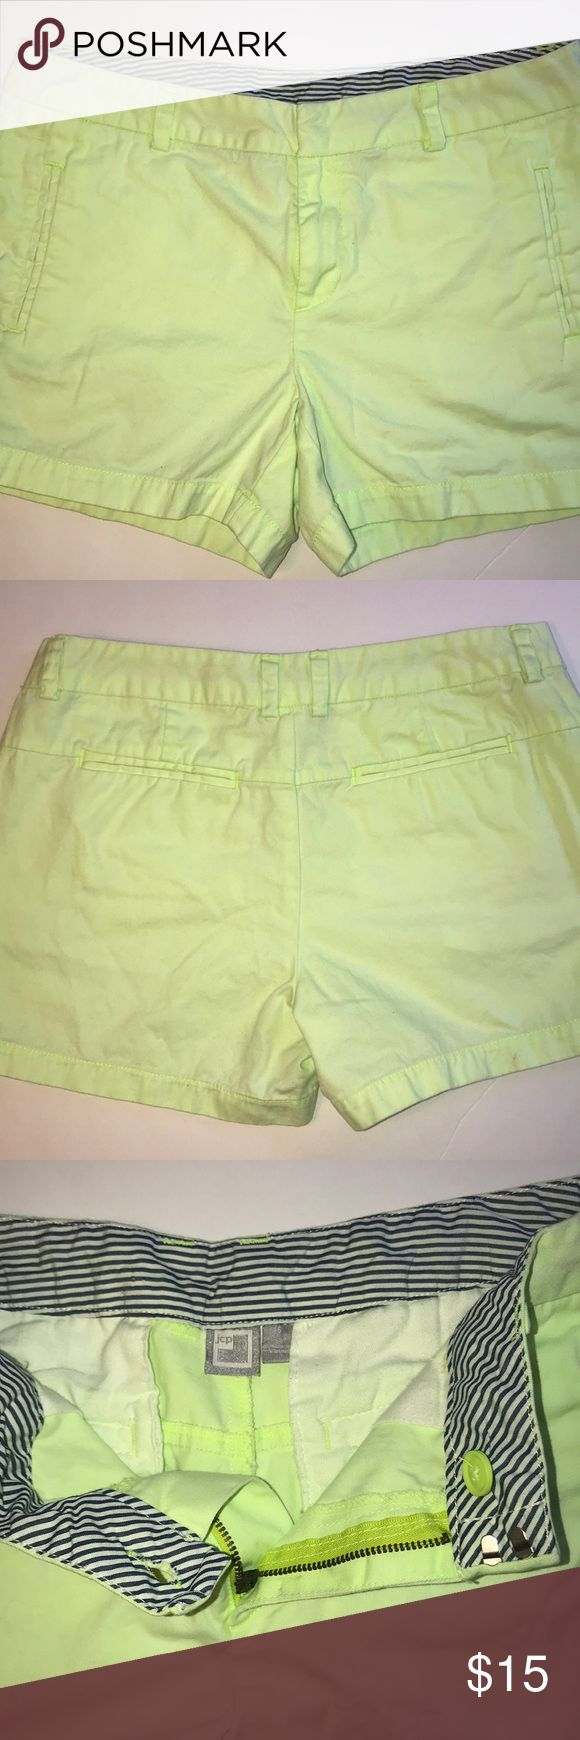 """Jc Penney Lime Green Shorts size 6 Adorable Jc Penney lime green shorts. These are not a super bright highlighter lime green. Just enough to possibly dress up or down. Navy striped interior waistband.   Waist: 17"""" Inseam: 4.5""""  Rise: 9.5"""" jcpenney Shorts"""